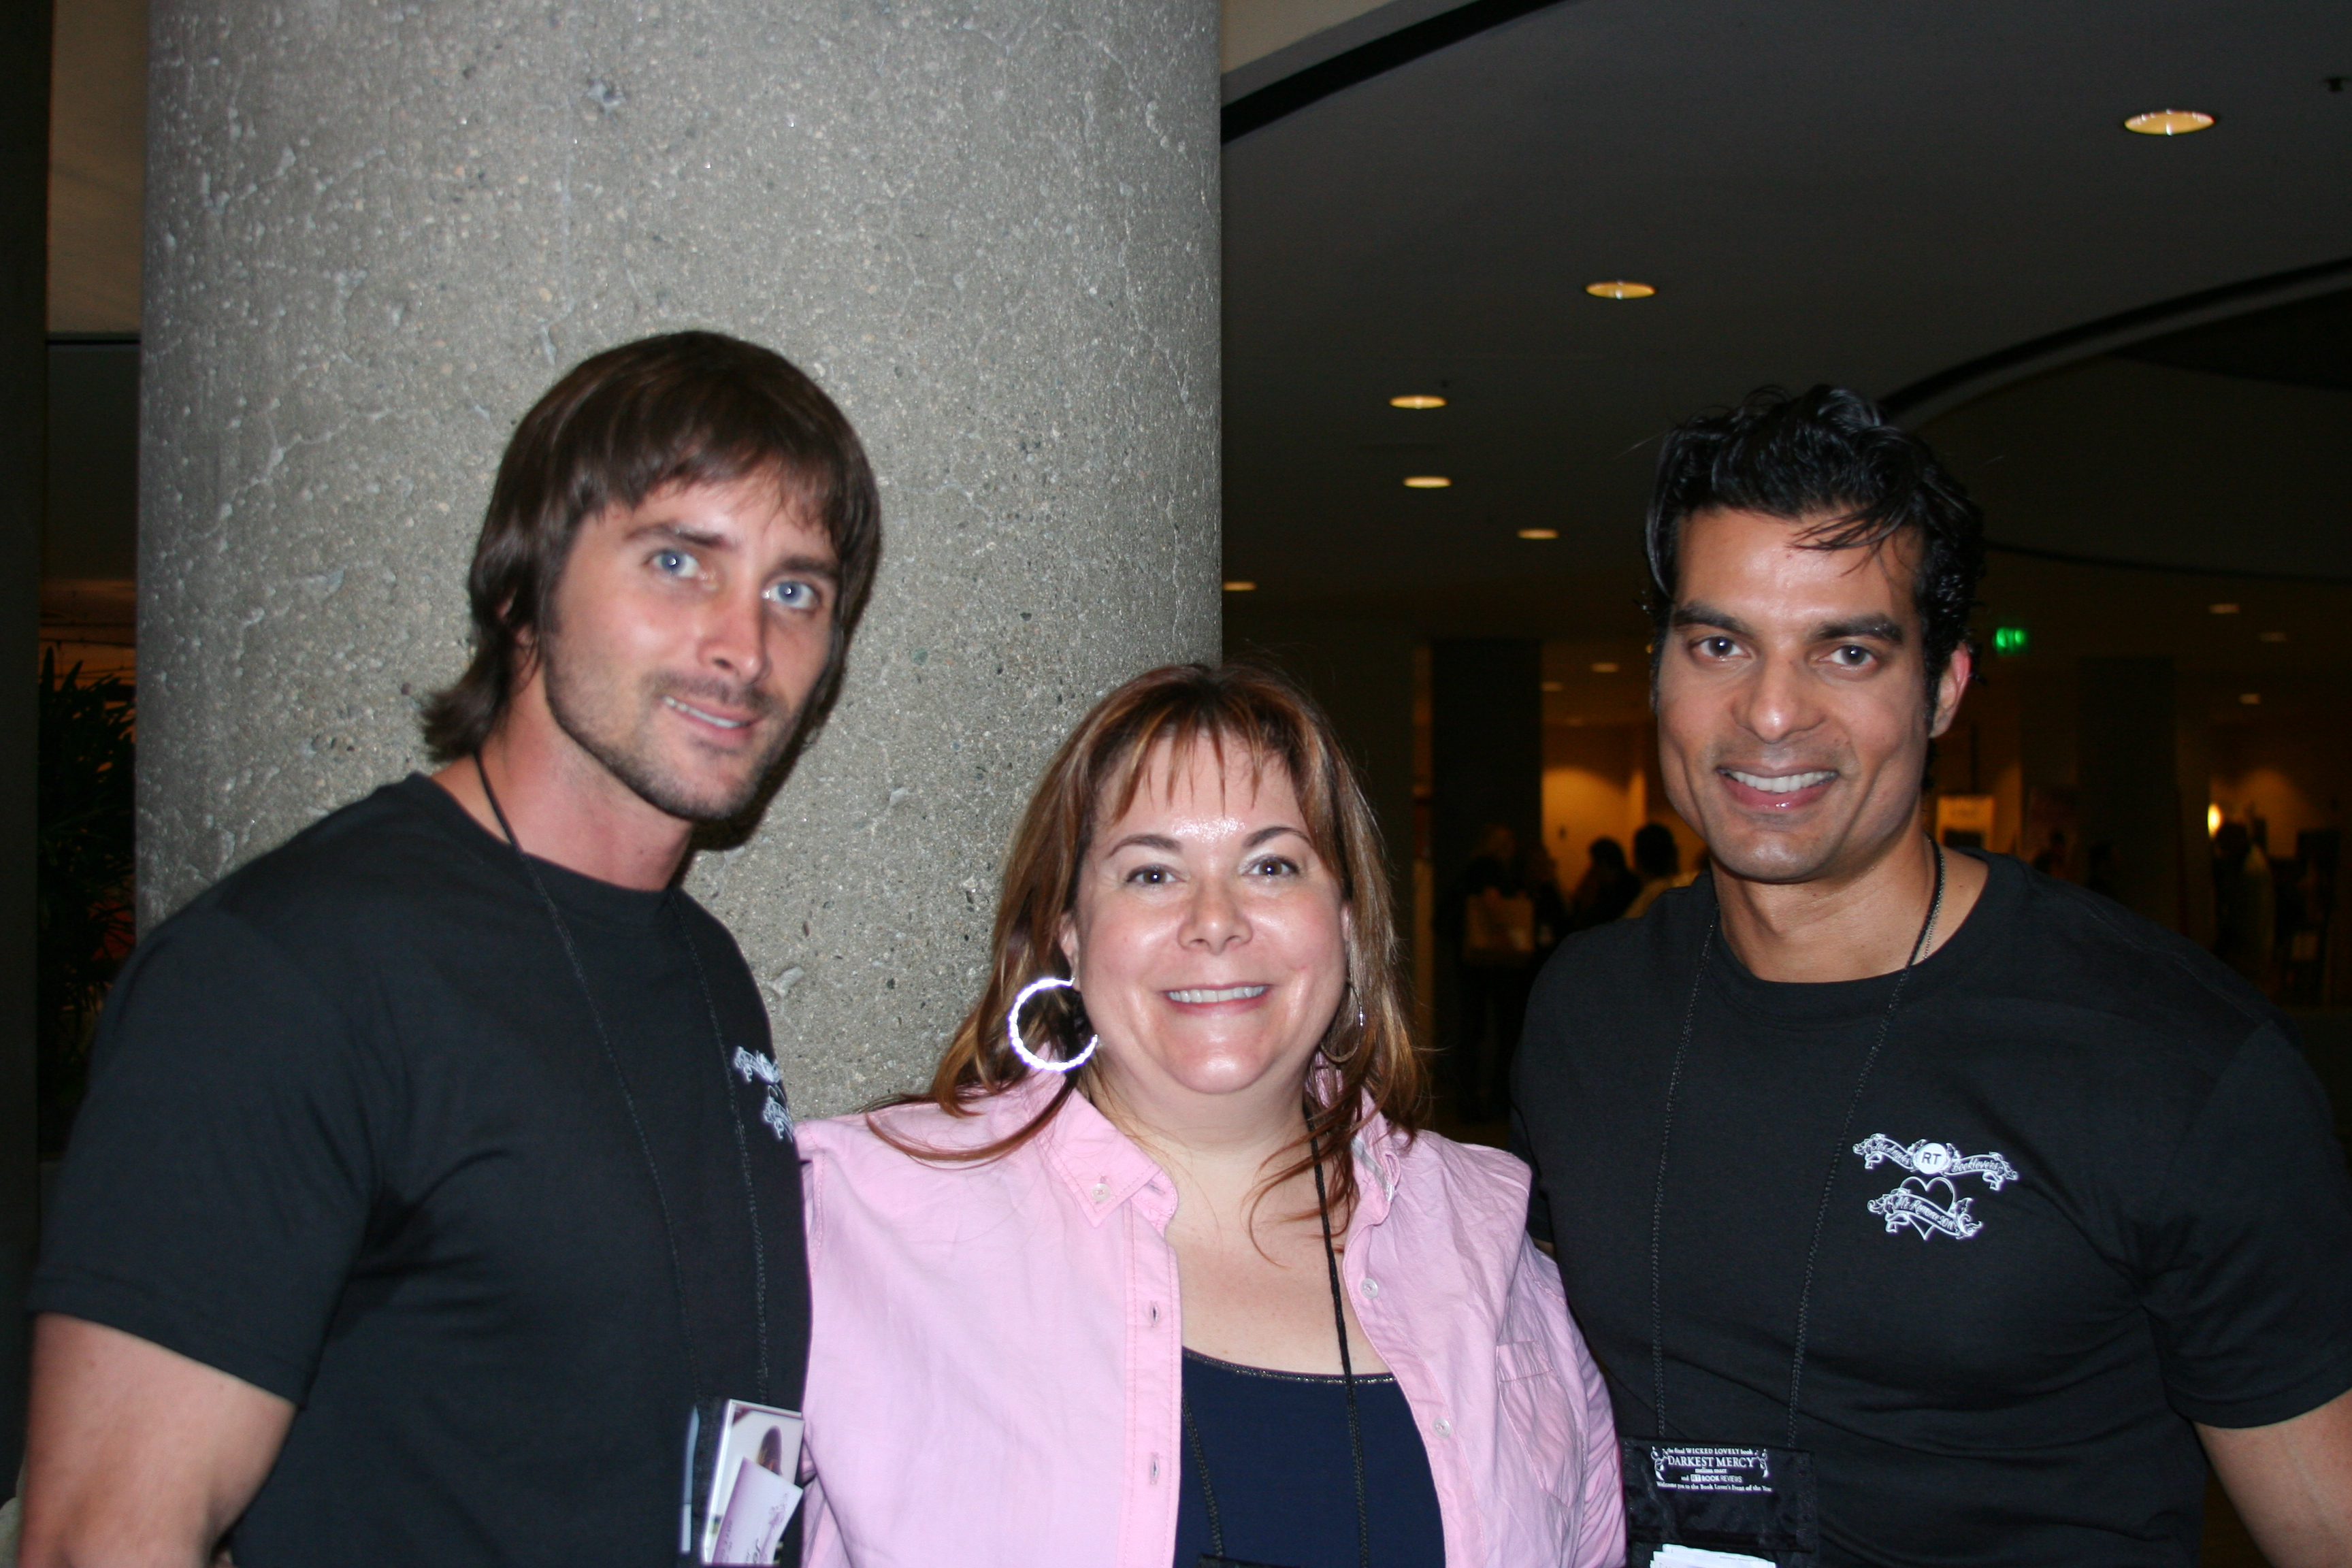 2011 RT Convention with Jeremy R., me, and Stefan Pinto